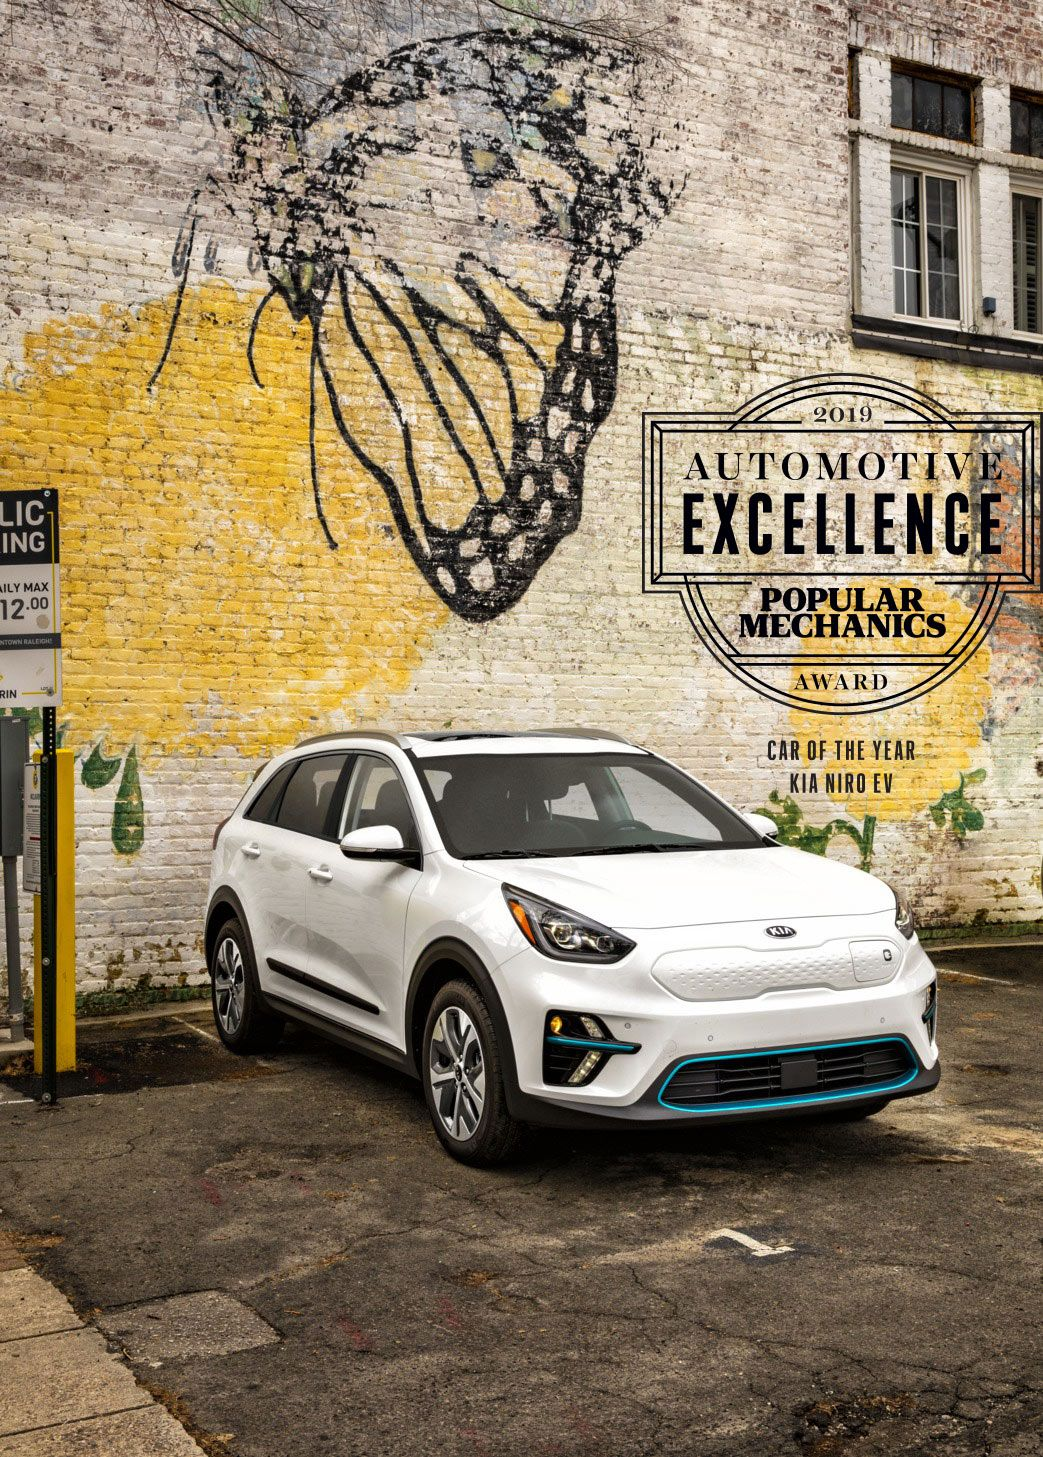 Popular Mechanics Editorial Calendar 2021 2019 Popular Mechanics Automotive Excellence Awards   Car of the Year